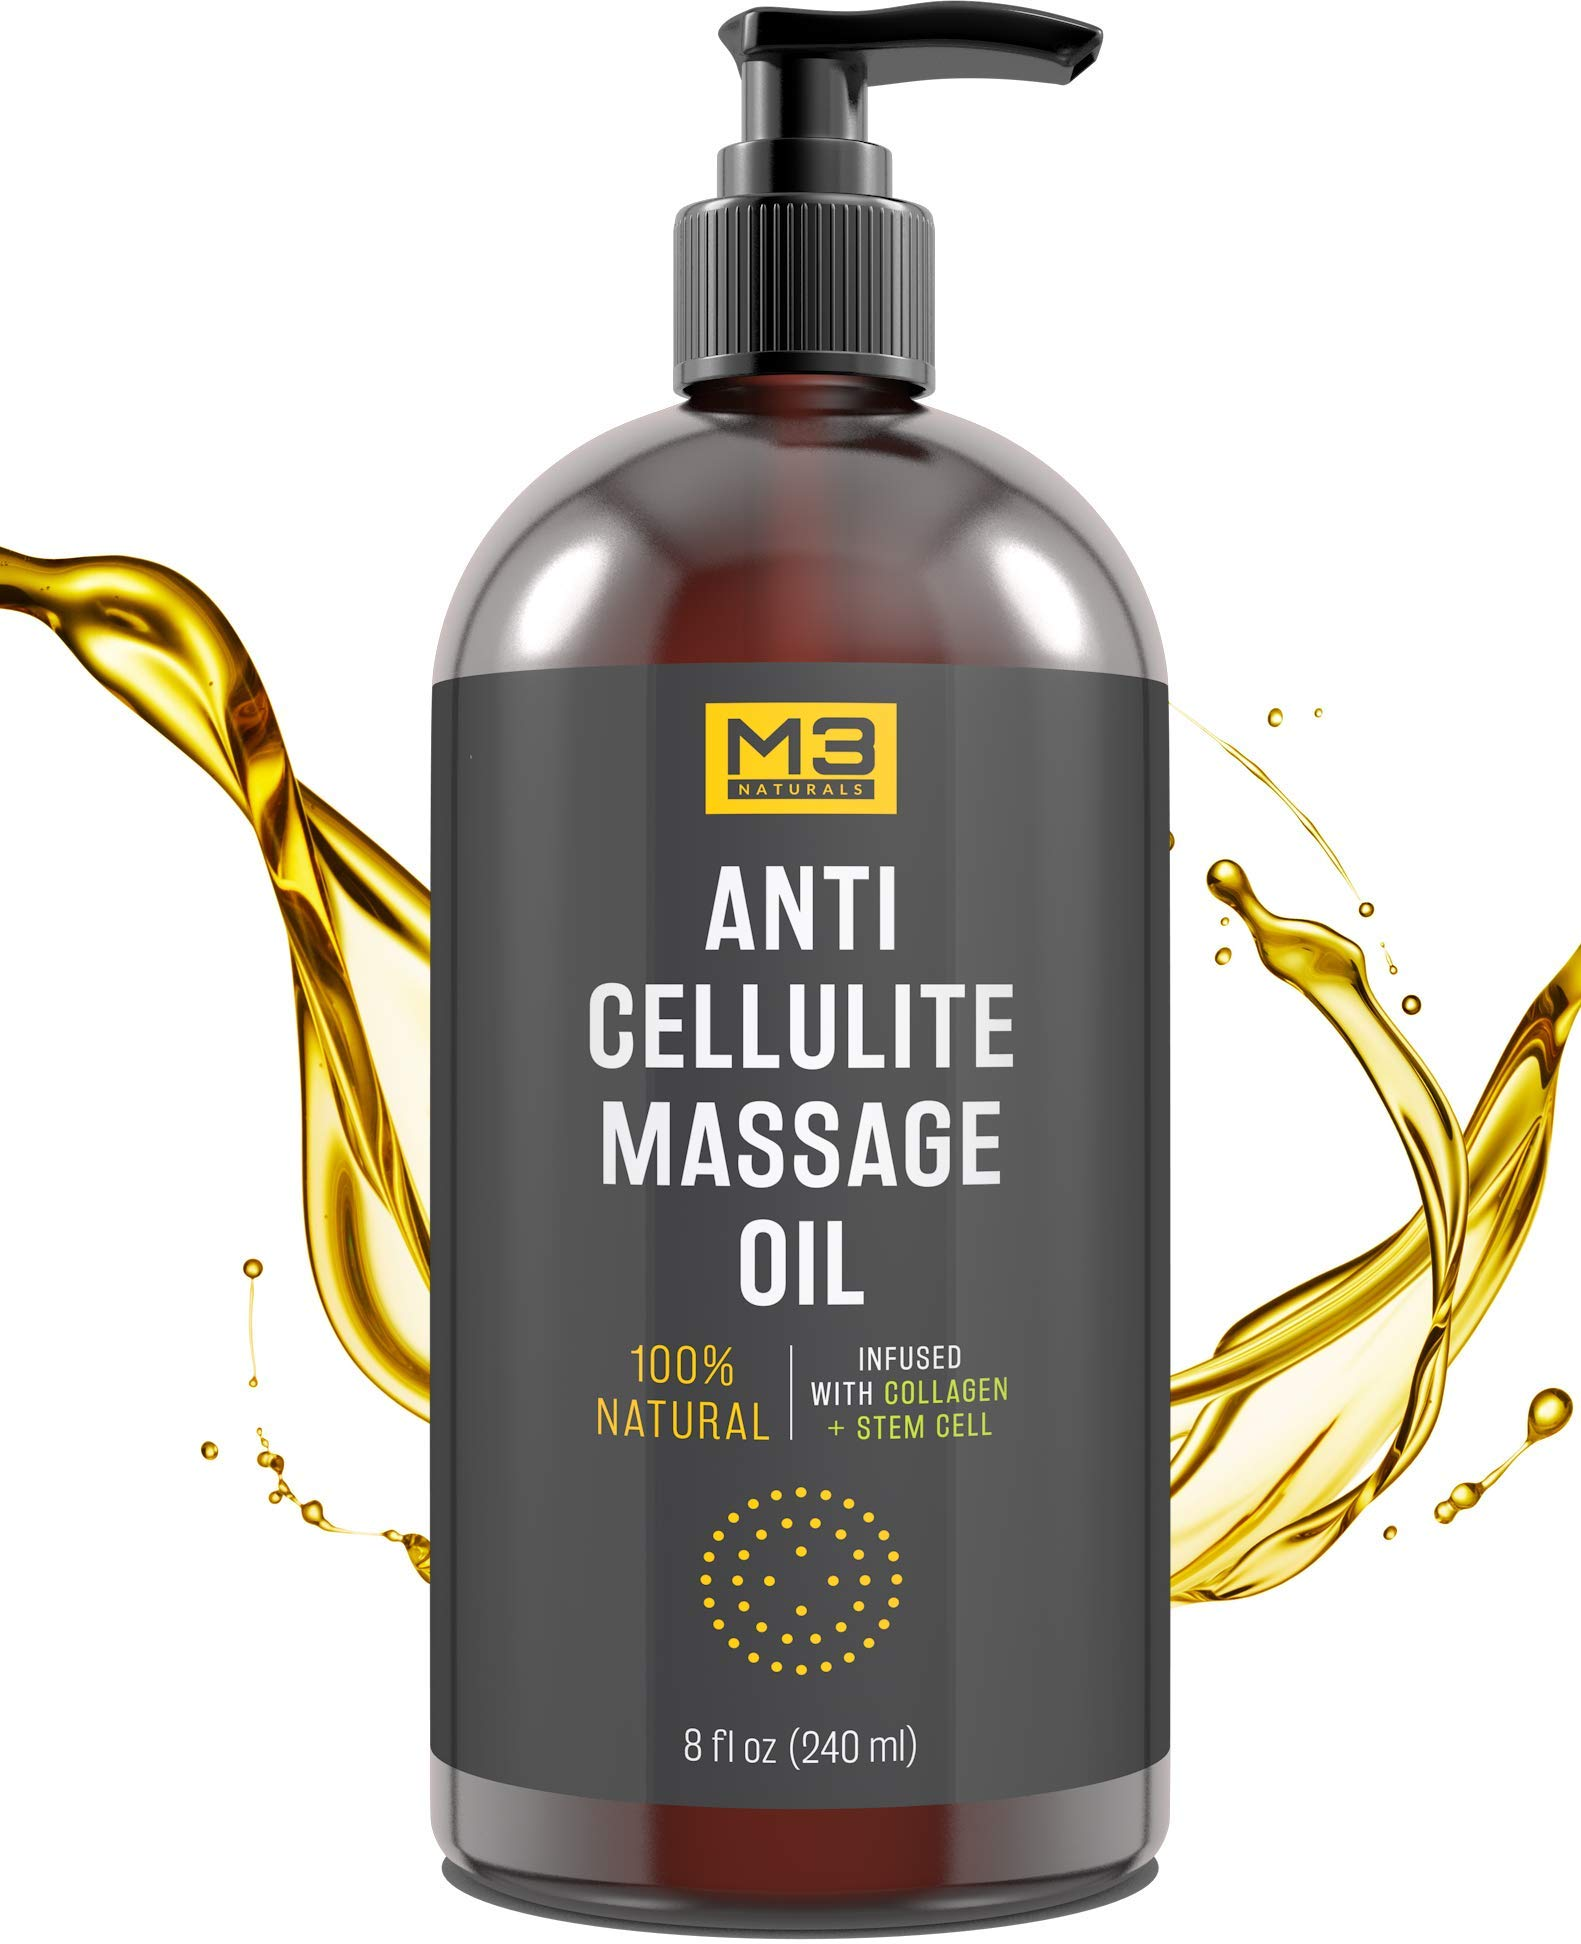 M3 Naturals Anti Cellulite Massage Oil Infused with Collagen and Stem Cell Natural Essential Oil Lotion Firm Tighten Skin Tone Unwanted Fat Tissue Stretch Mark Removal Cream Massager Fascia Blaster by M3 Naturals